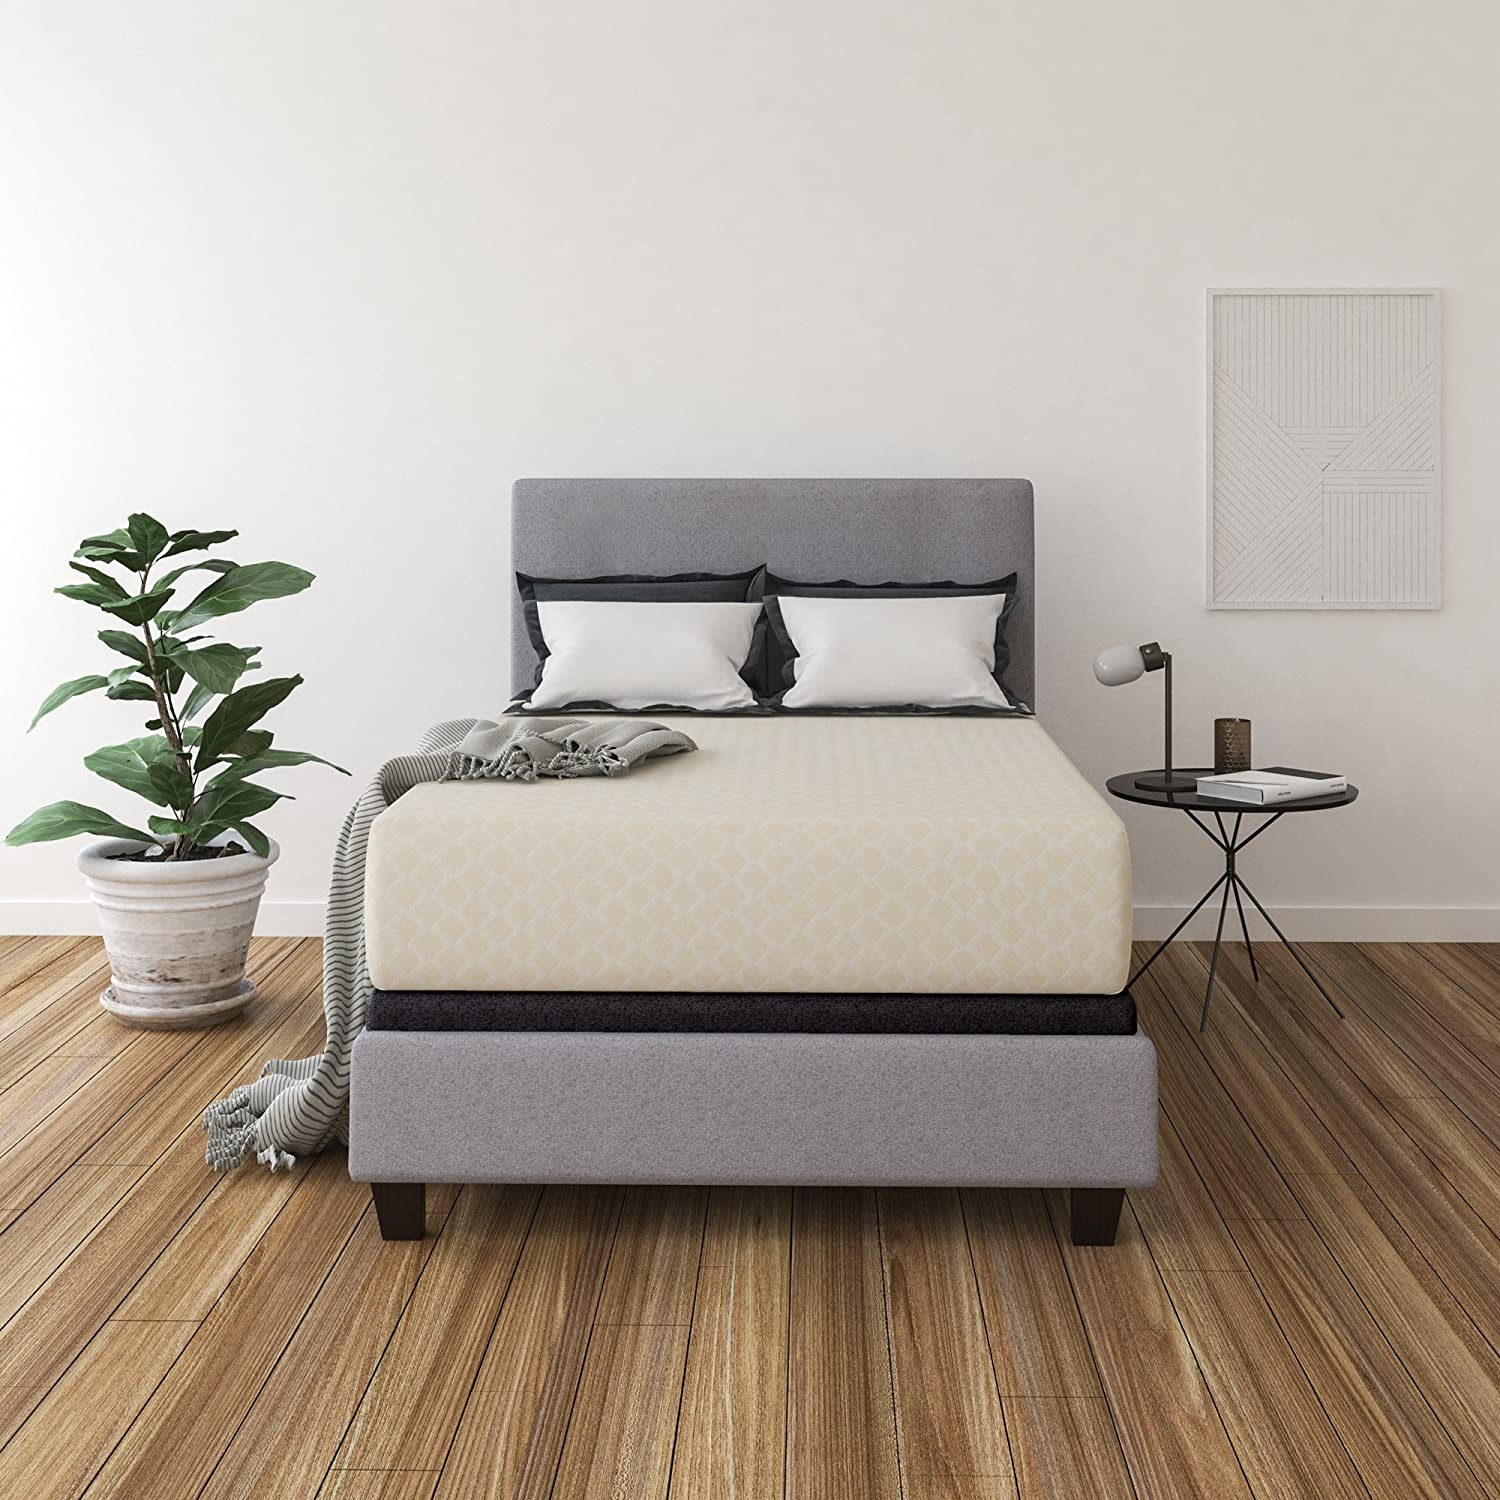 Ashley Furniture Signature Design - 12 Inch Chime Express Memory Foam Mattress - Bed in a Box - Full - Firm Comfort Level - White